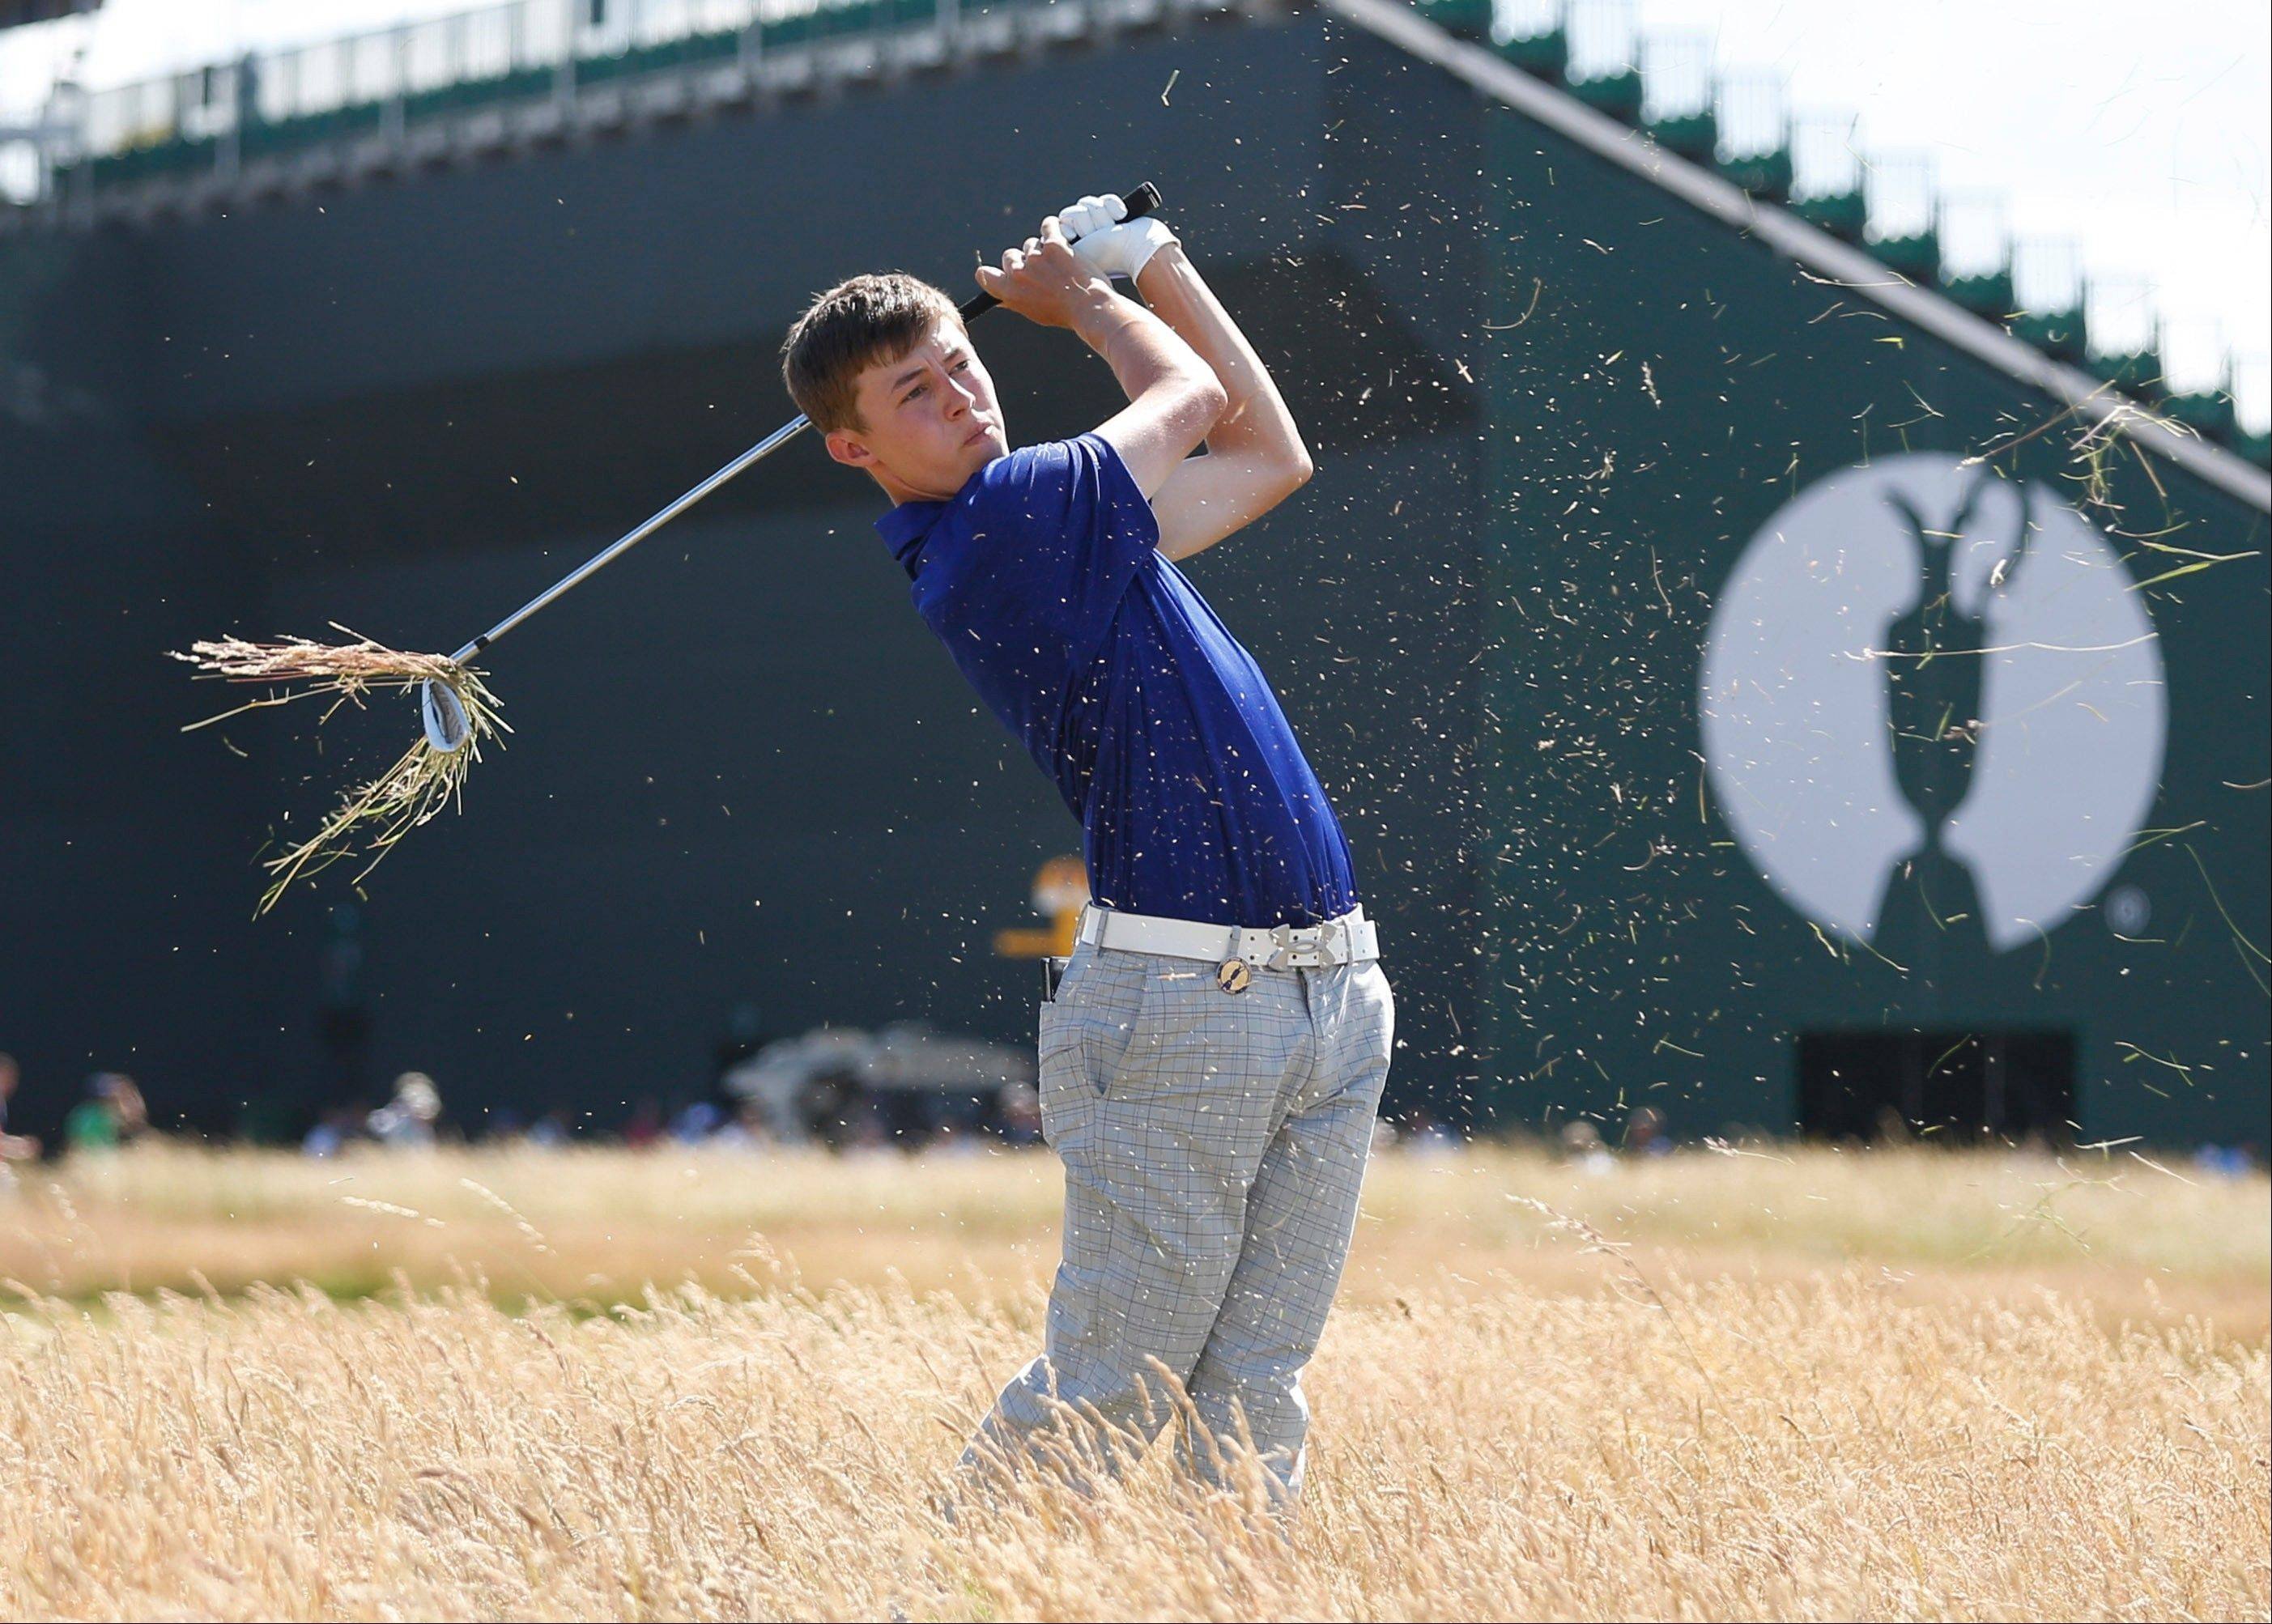 U.S. Amateur champion Matthew Fitzpatrick has decided to leave Northwestern University and return to England to focus on his golf game.